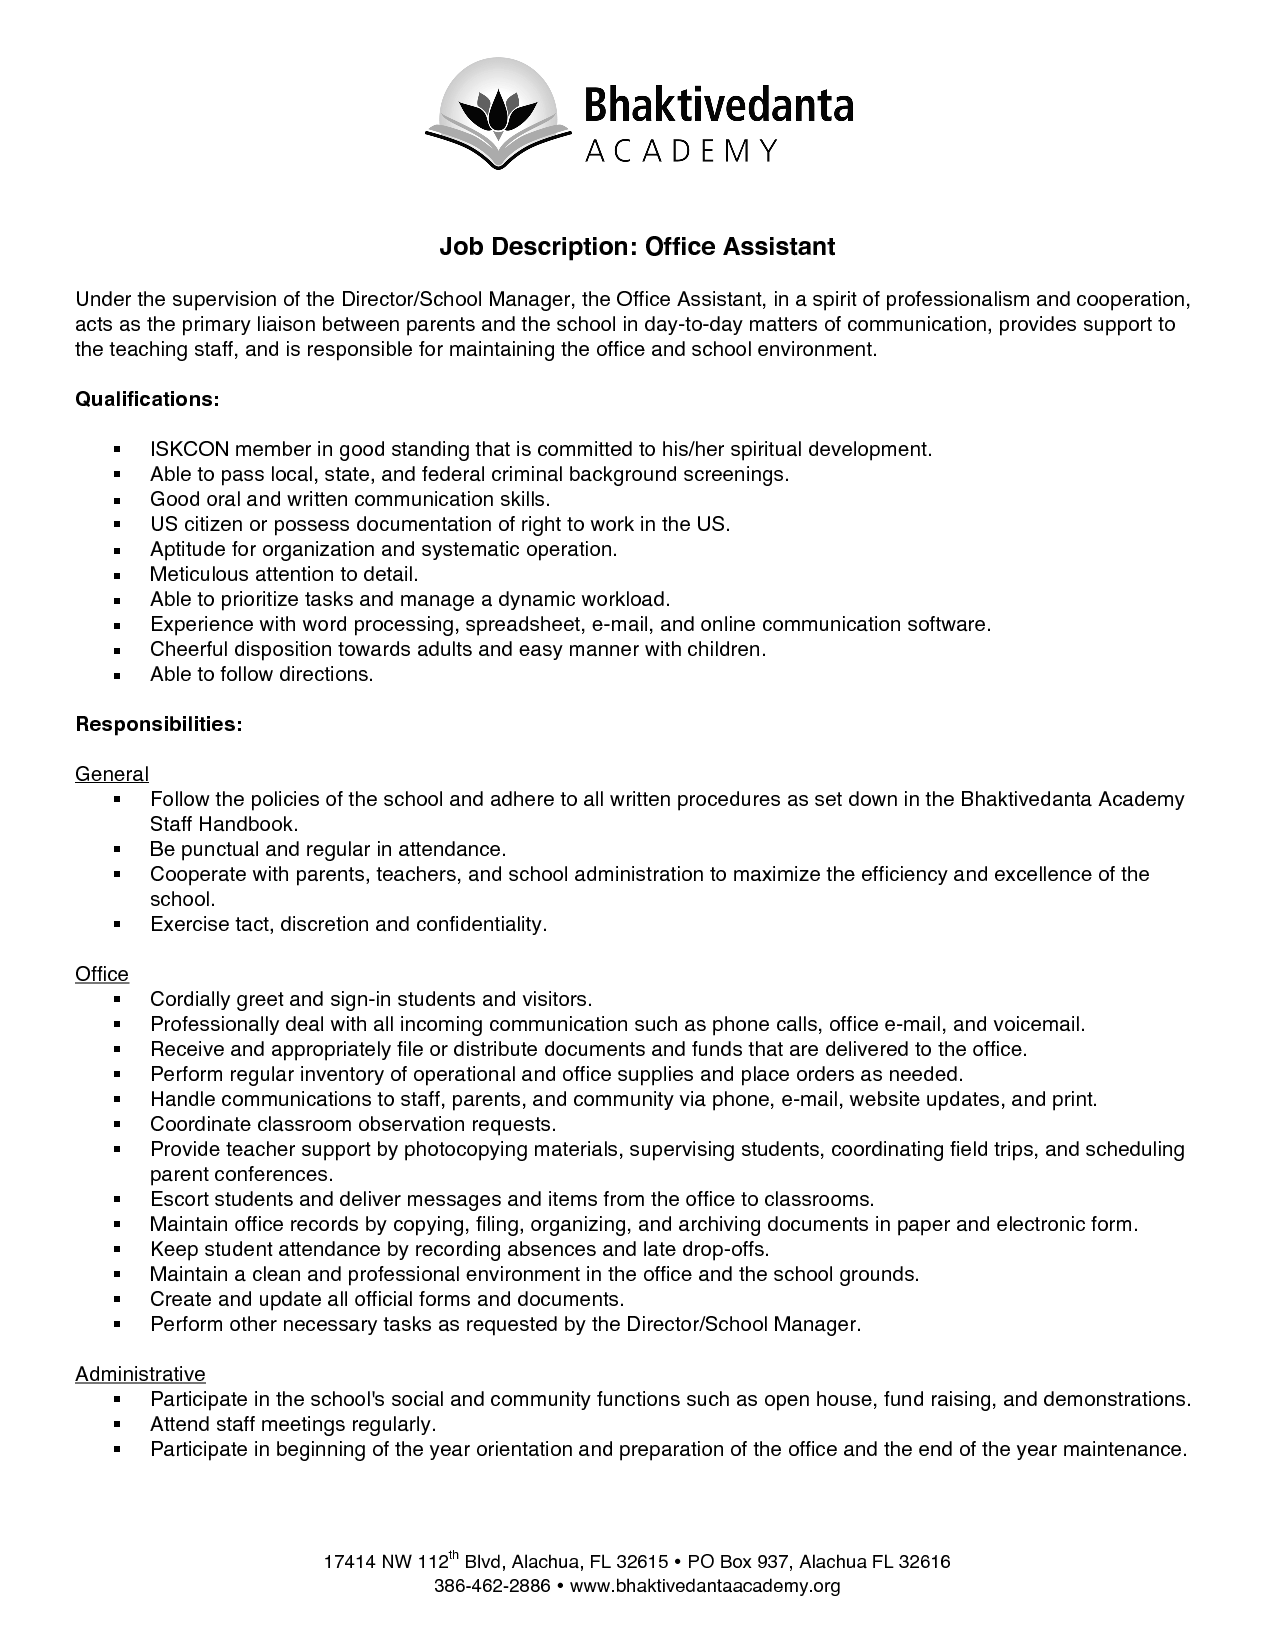 Office Assistant Job Description Resume Qualification